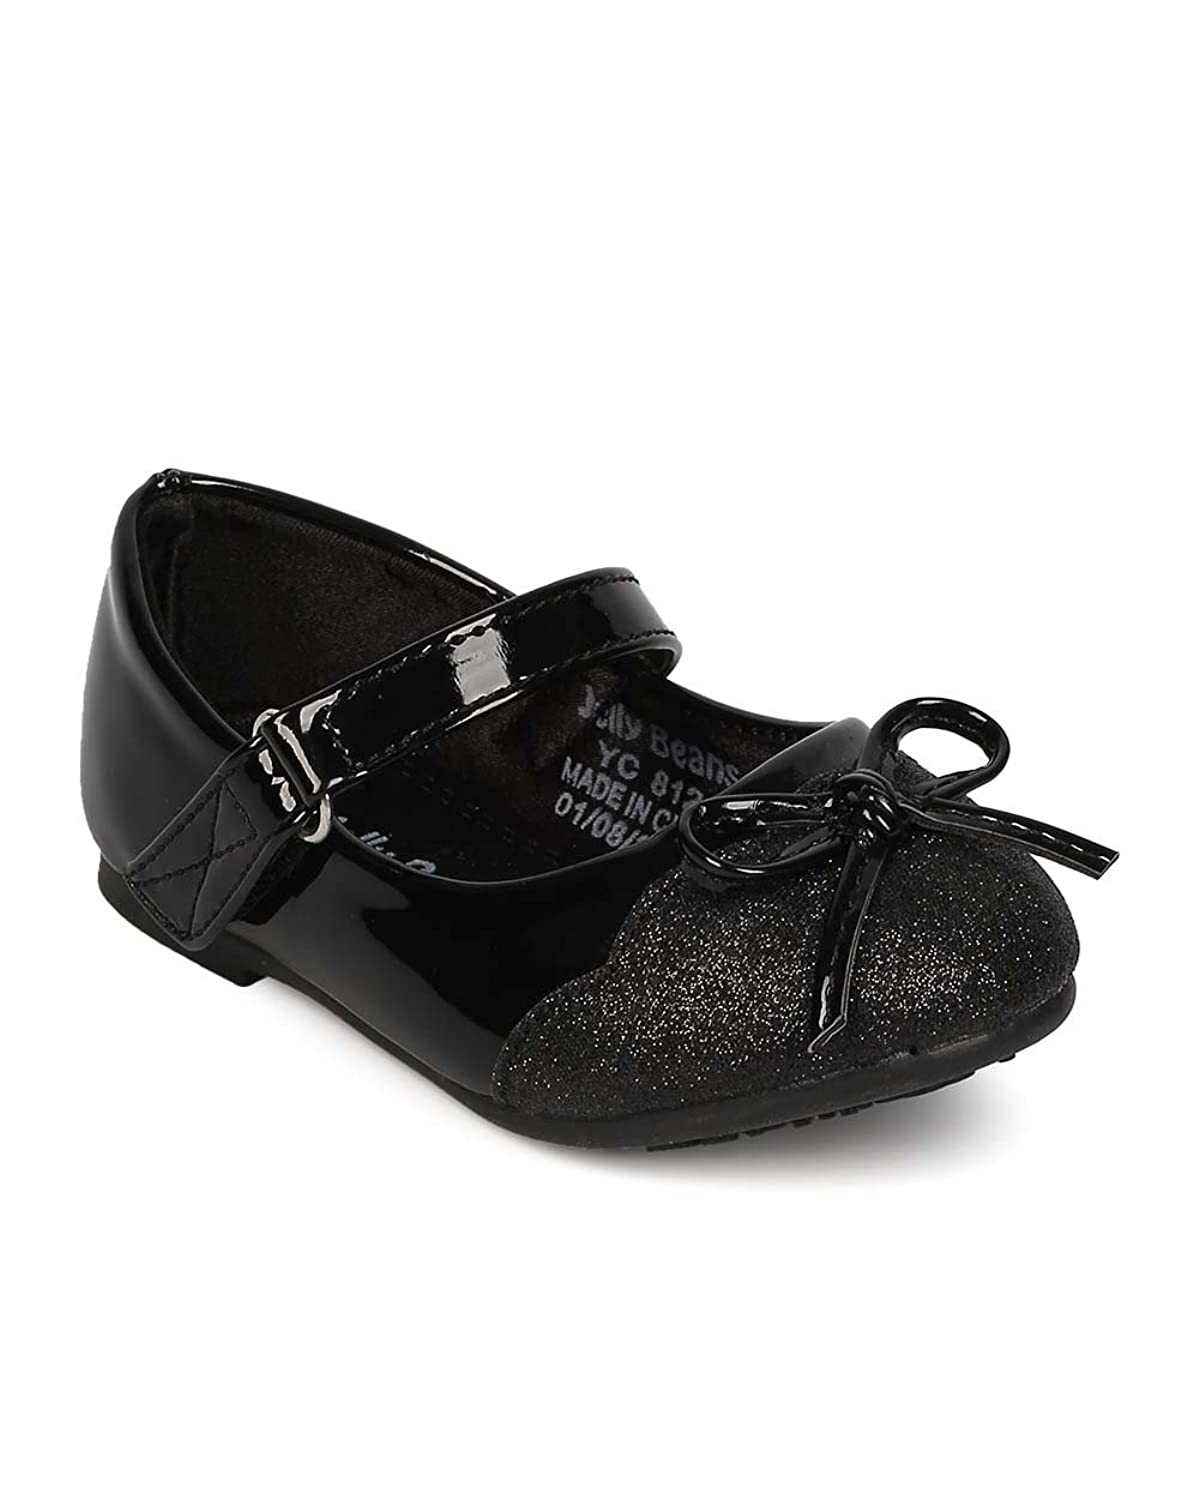 Aisun Boys Girls Cute Antiskid Round Toe Dress Slip-on Loafers/Flats Shoes with Bows